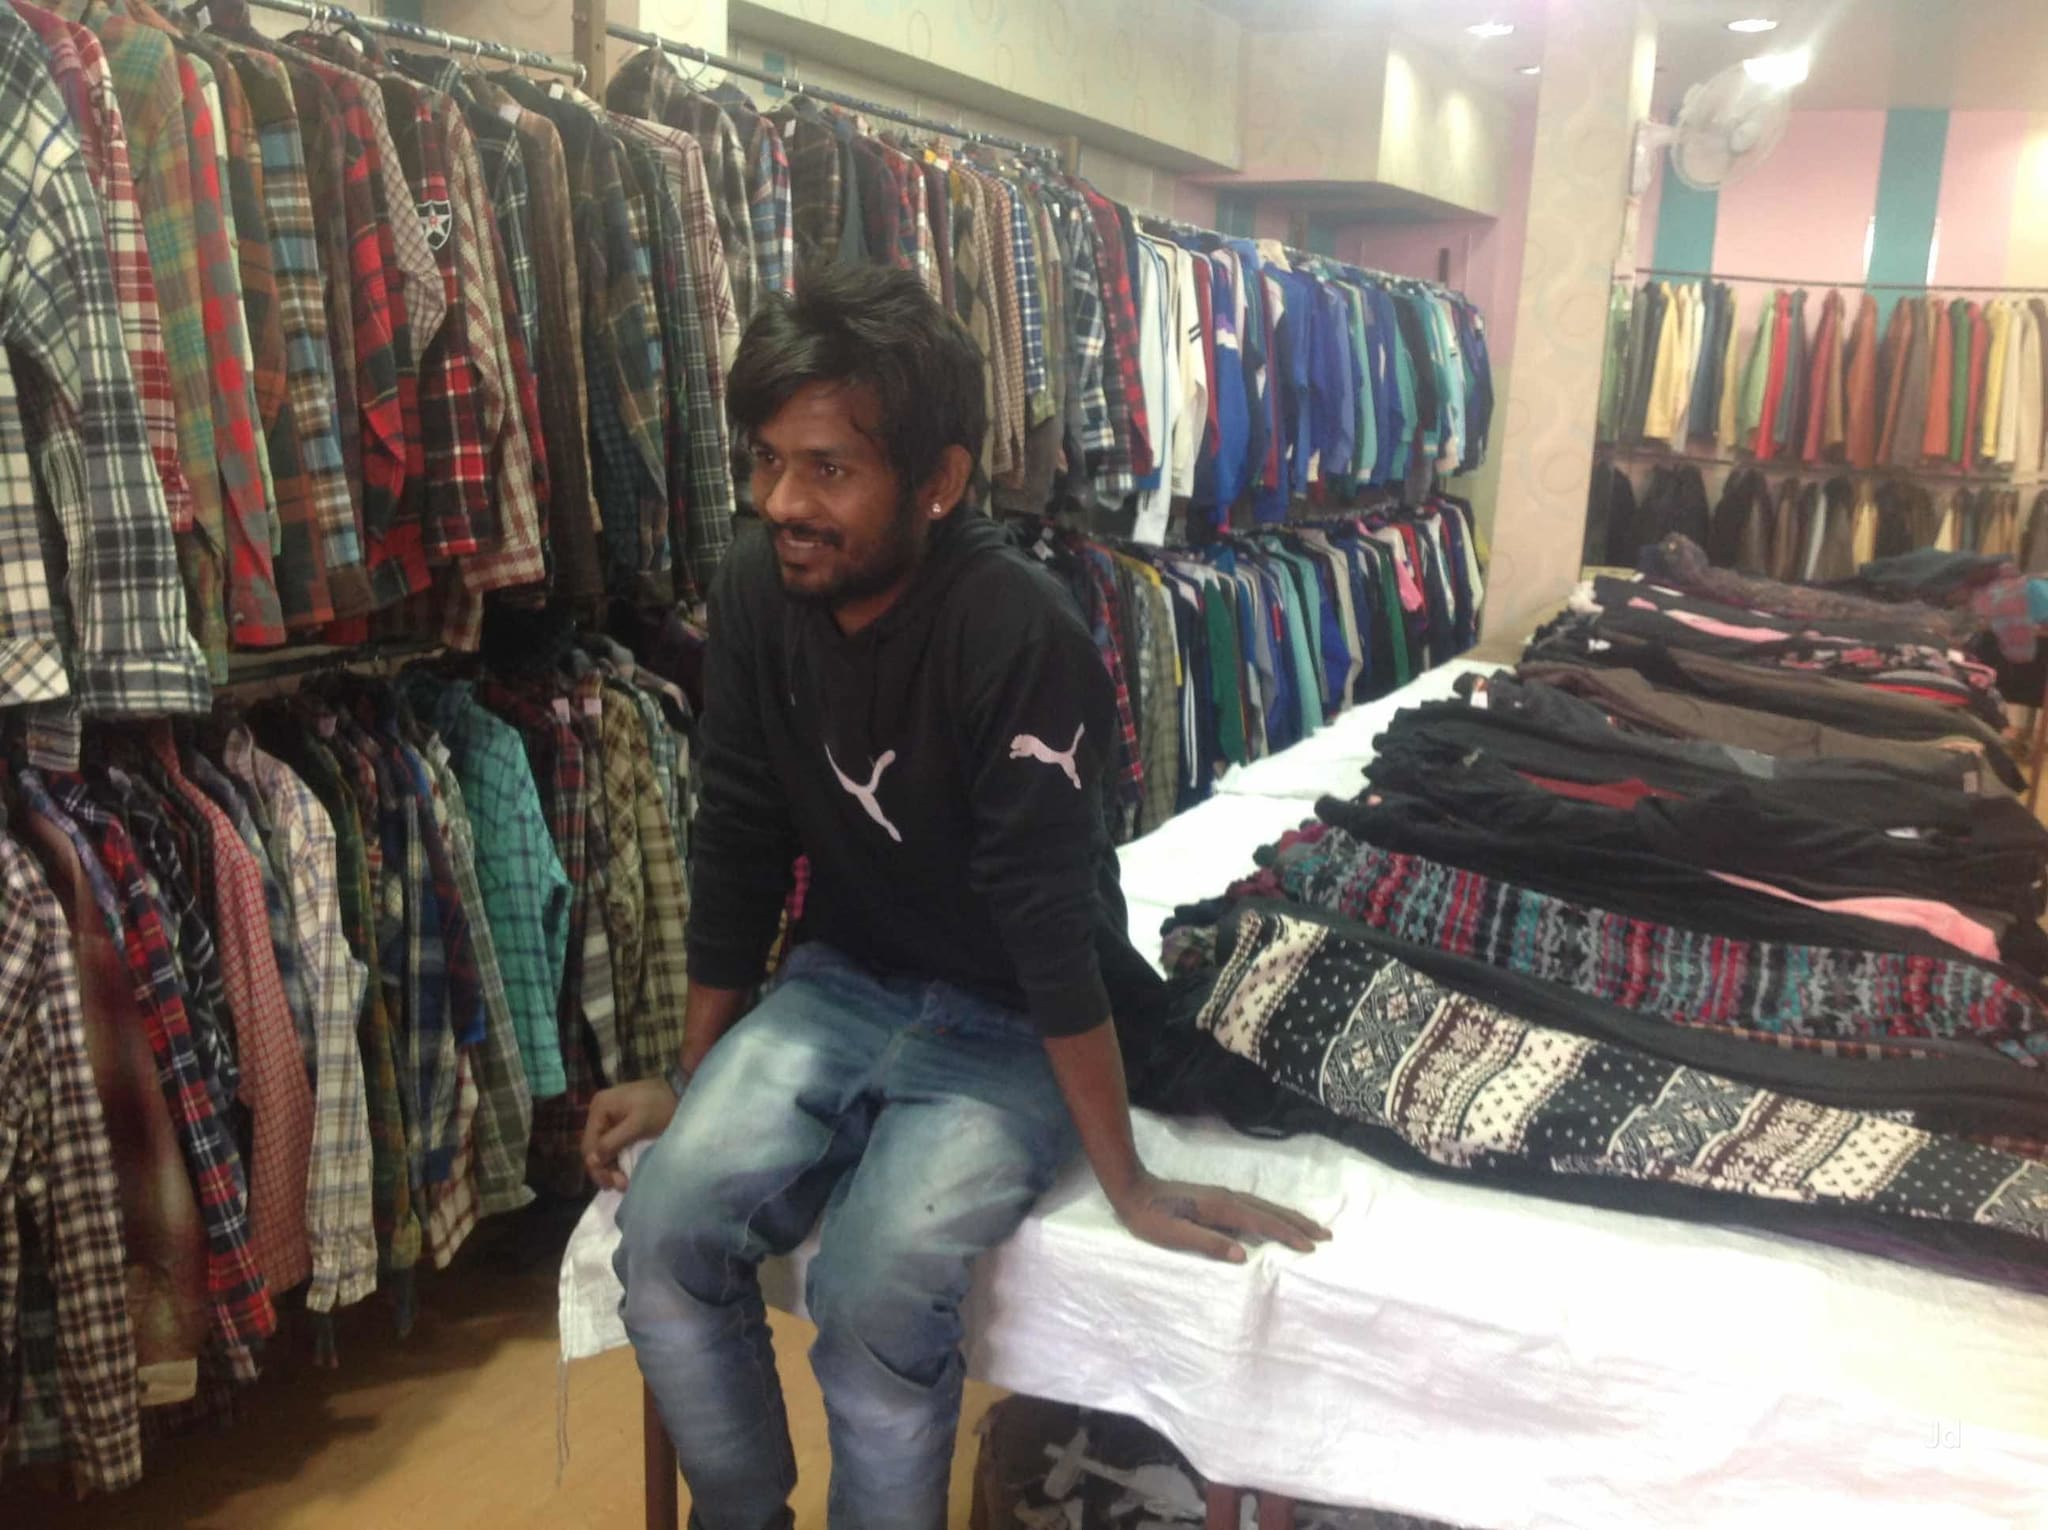 Top Export House in Jaipur - Justdial